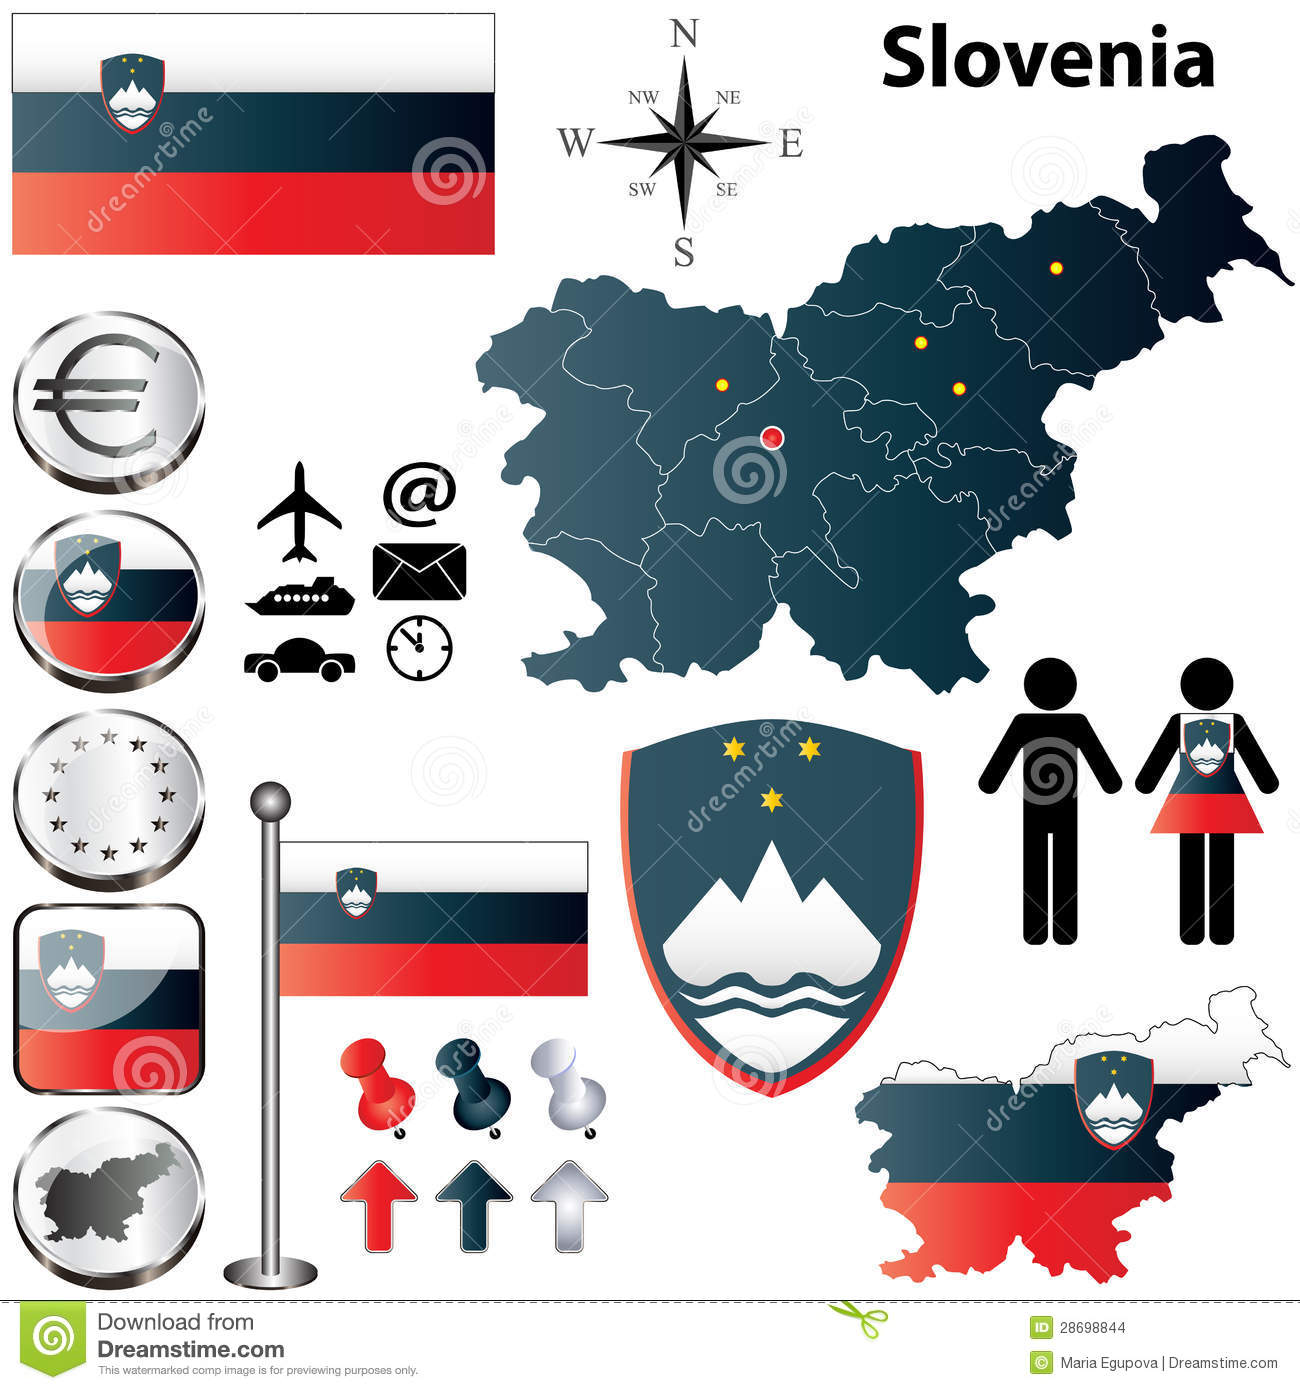 Slovenia Map Stock Photo Image Of Divisions Borders - Slovenia map download